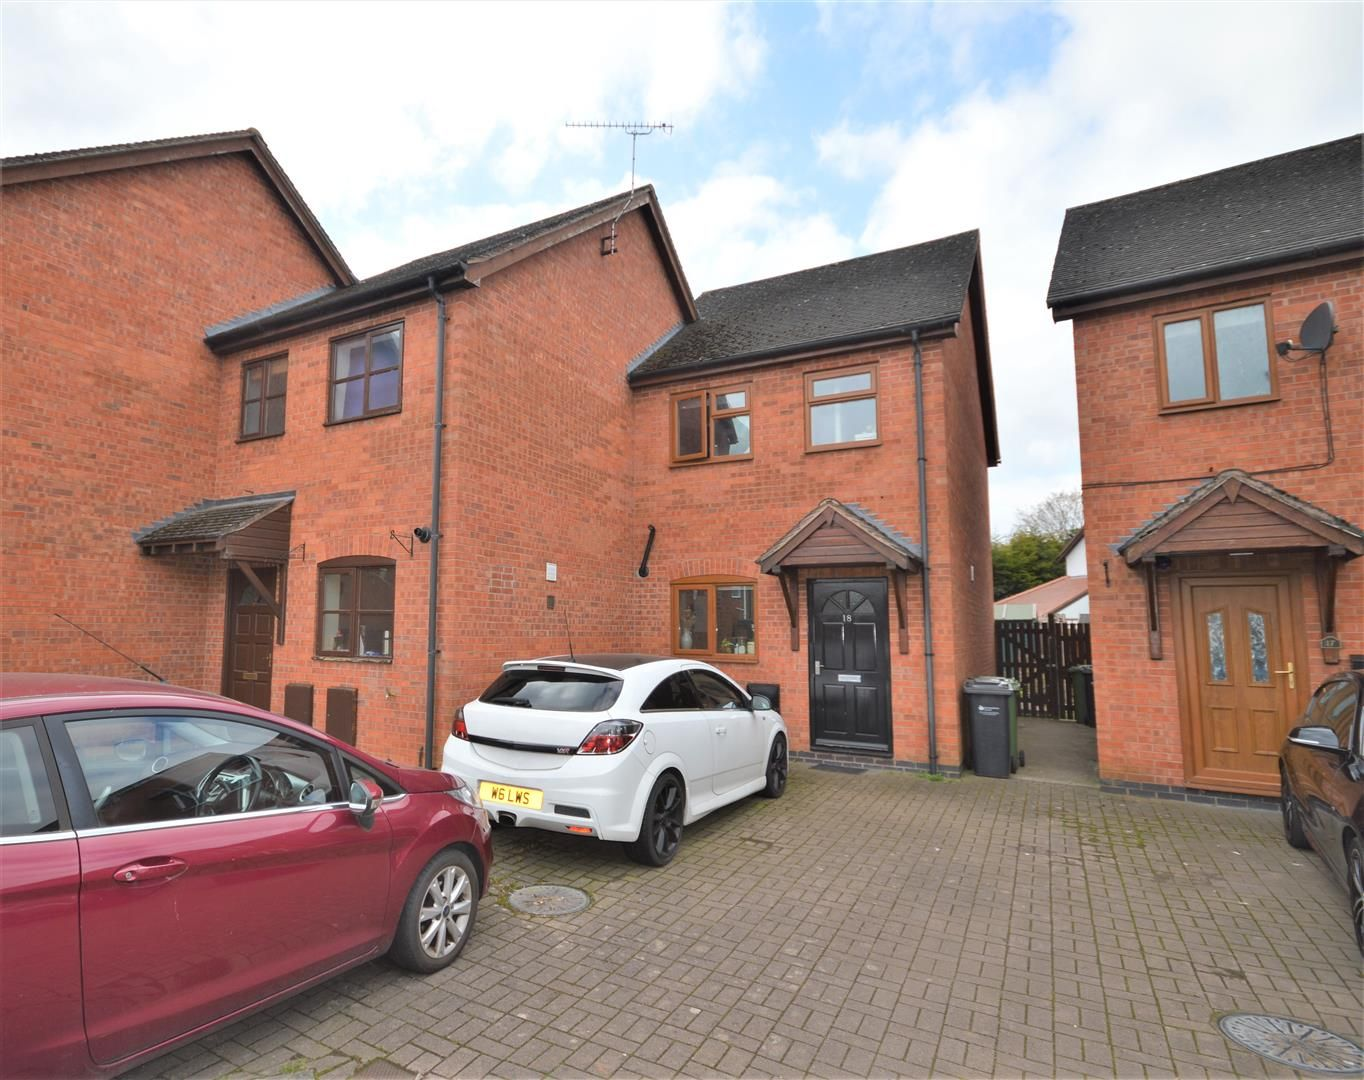 2 bed end of terrace for sale in Lower Bullingham 1